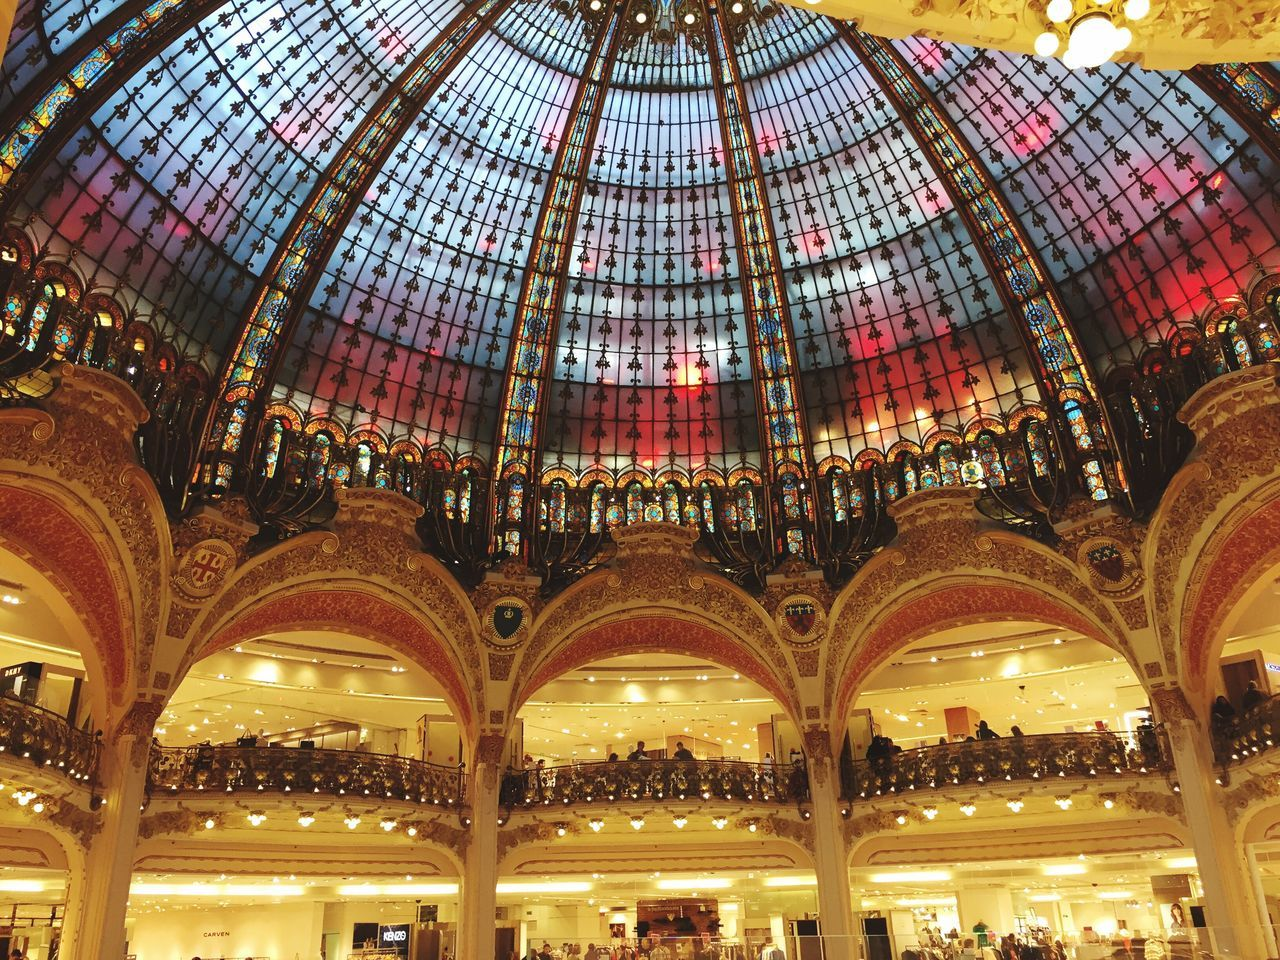 Ceiling Architecture Indoors  Low Angle View Built Structure Illuminated No People Day Sky Galeries Lafayette